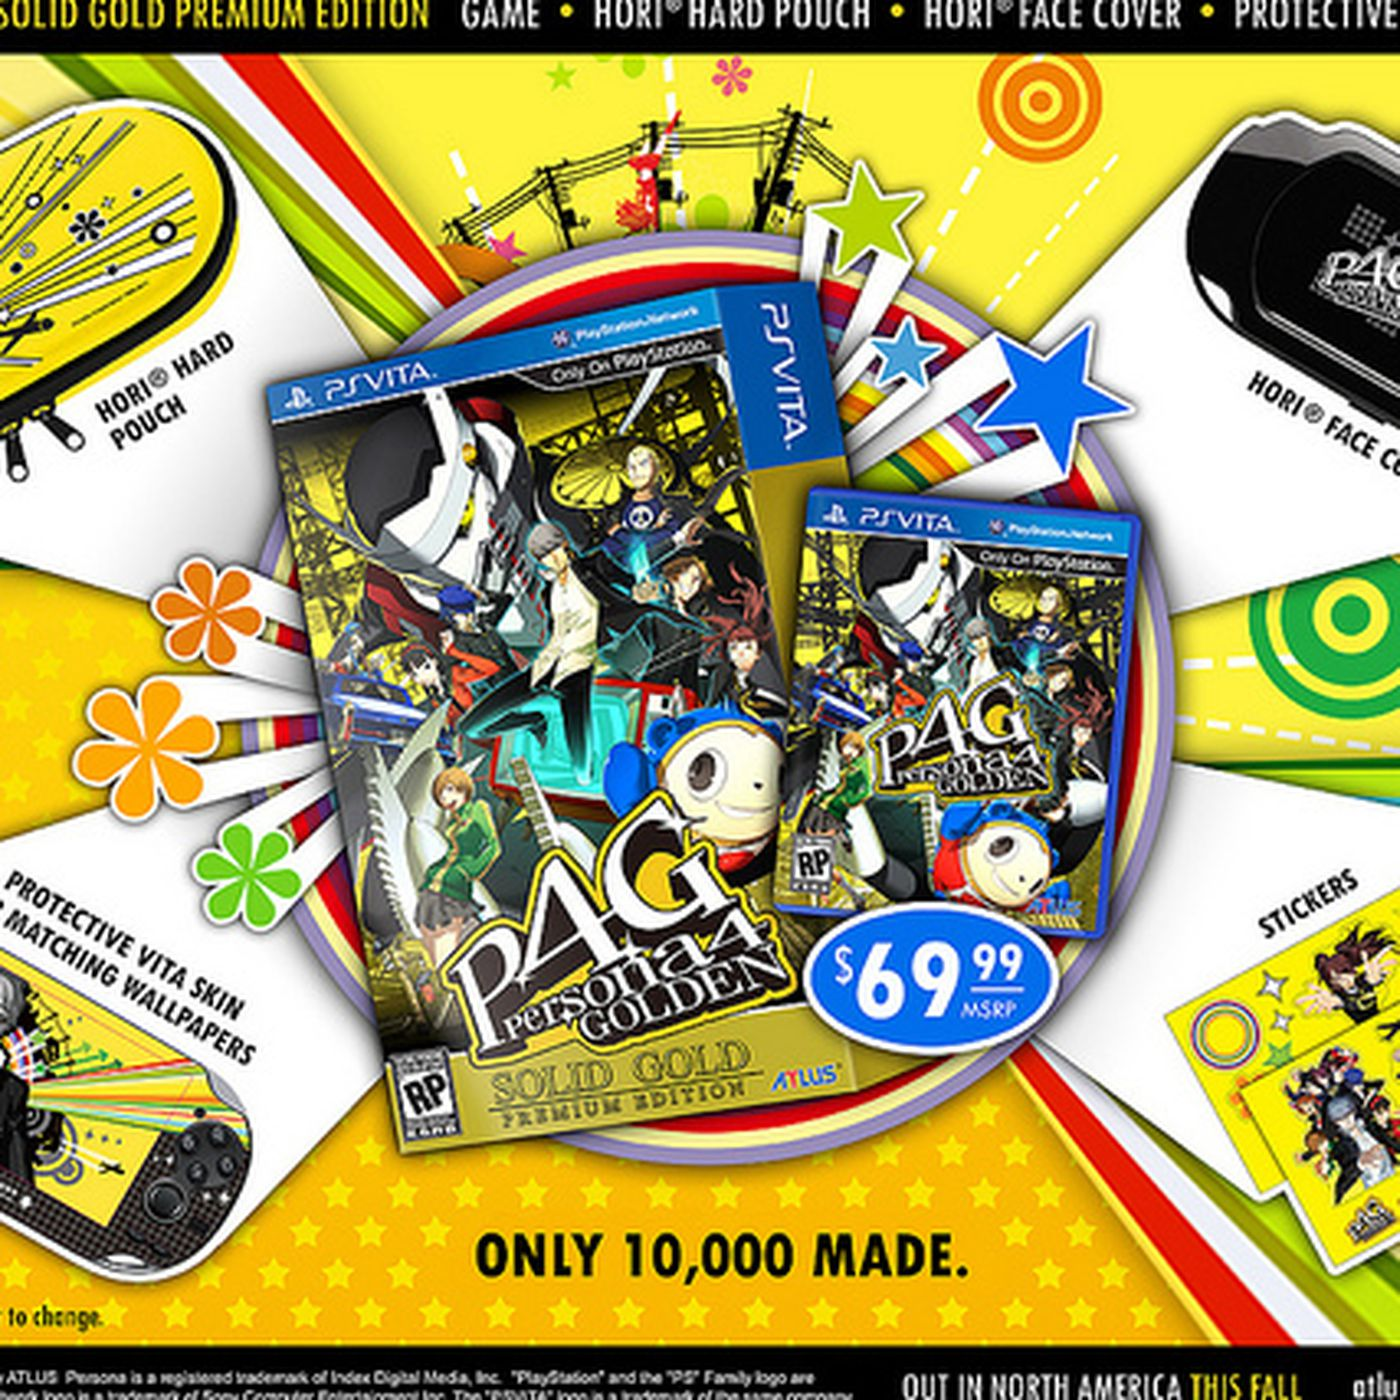 Limited 'Persona 4 Golden: Solid Gold Premium Edition